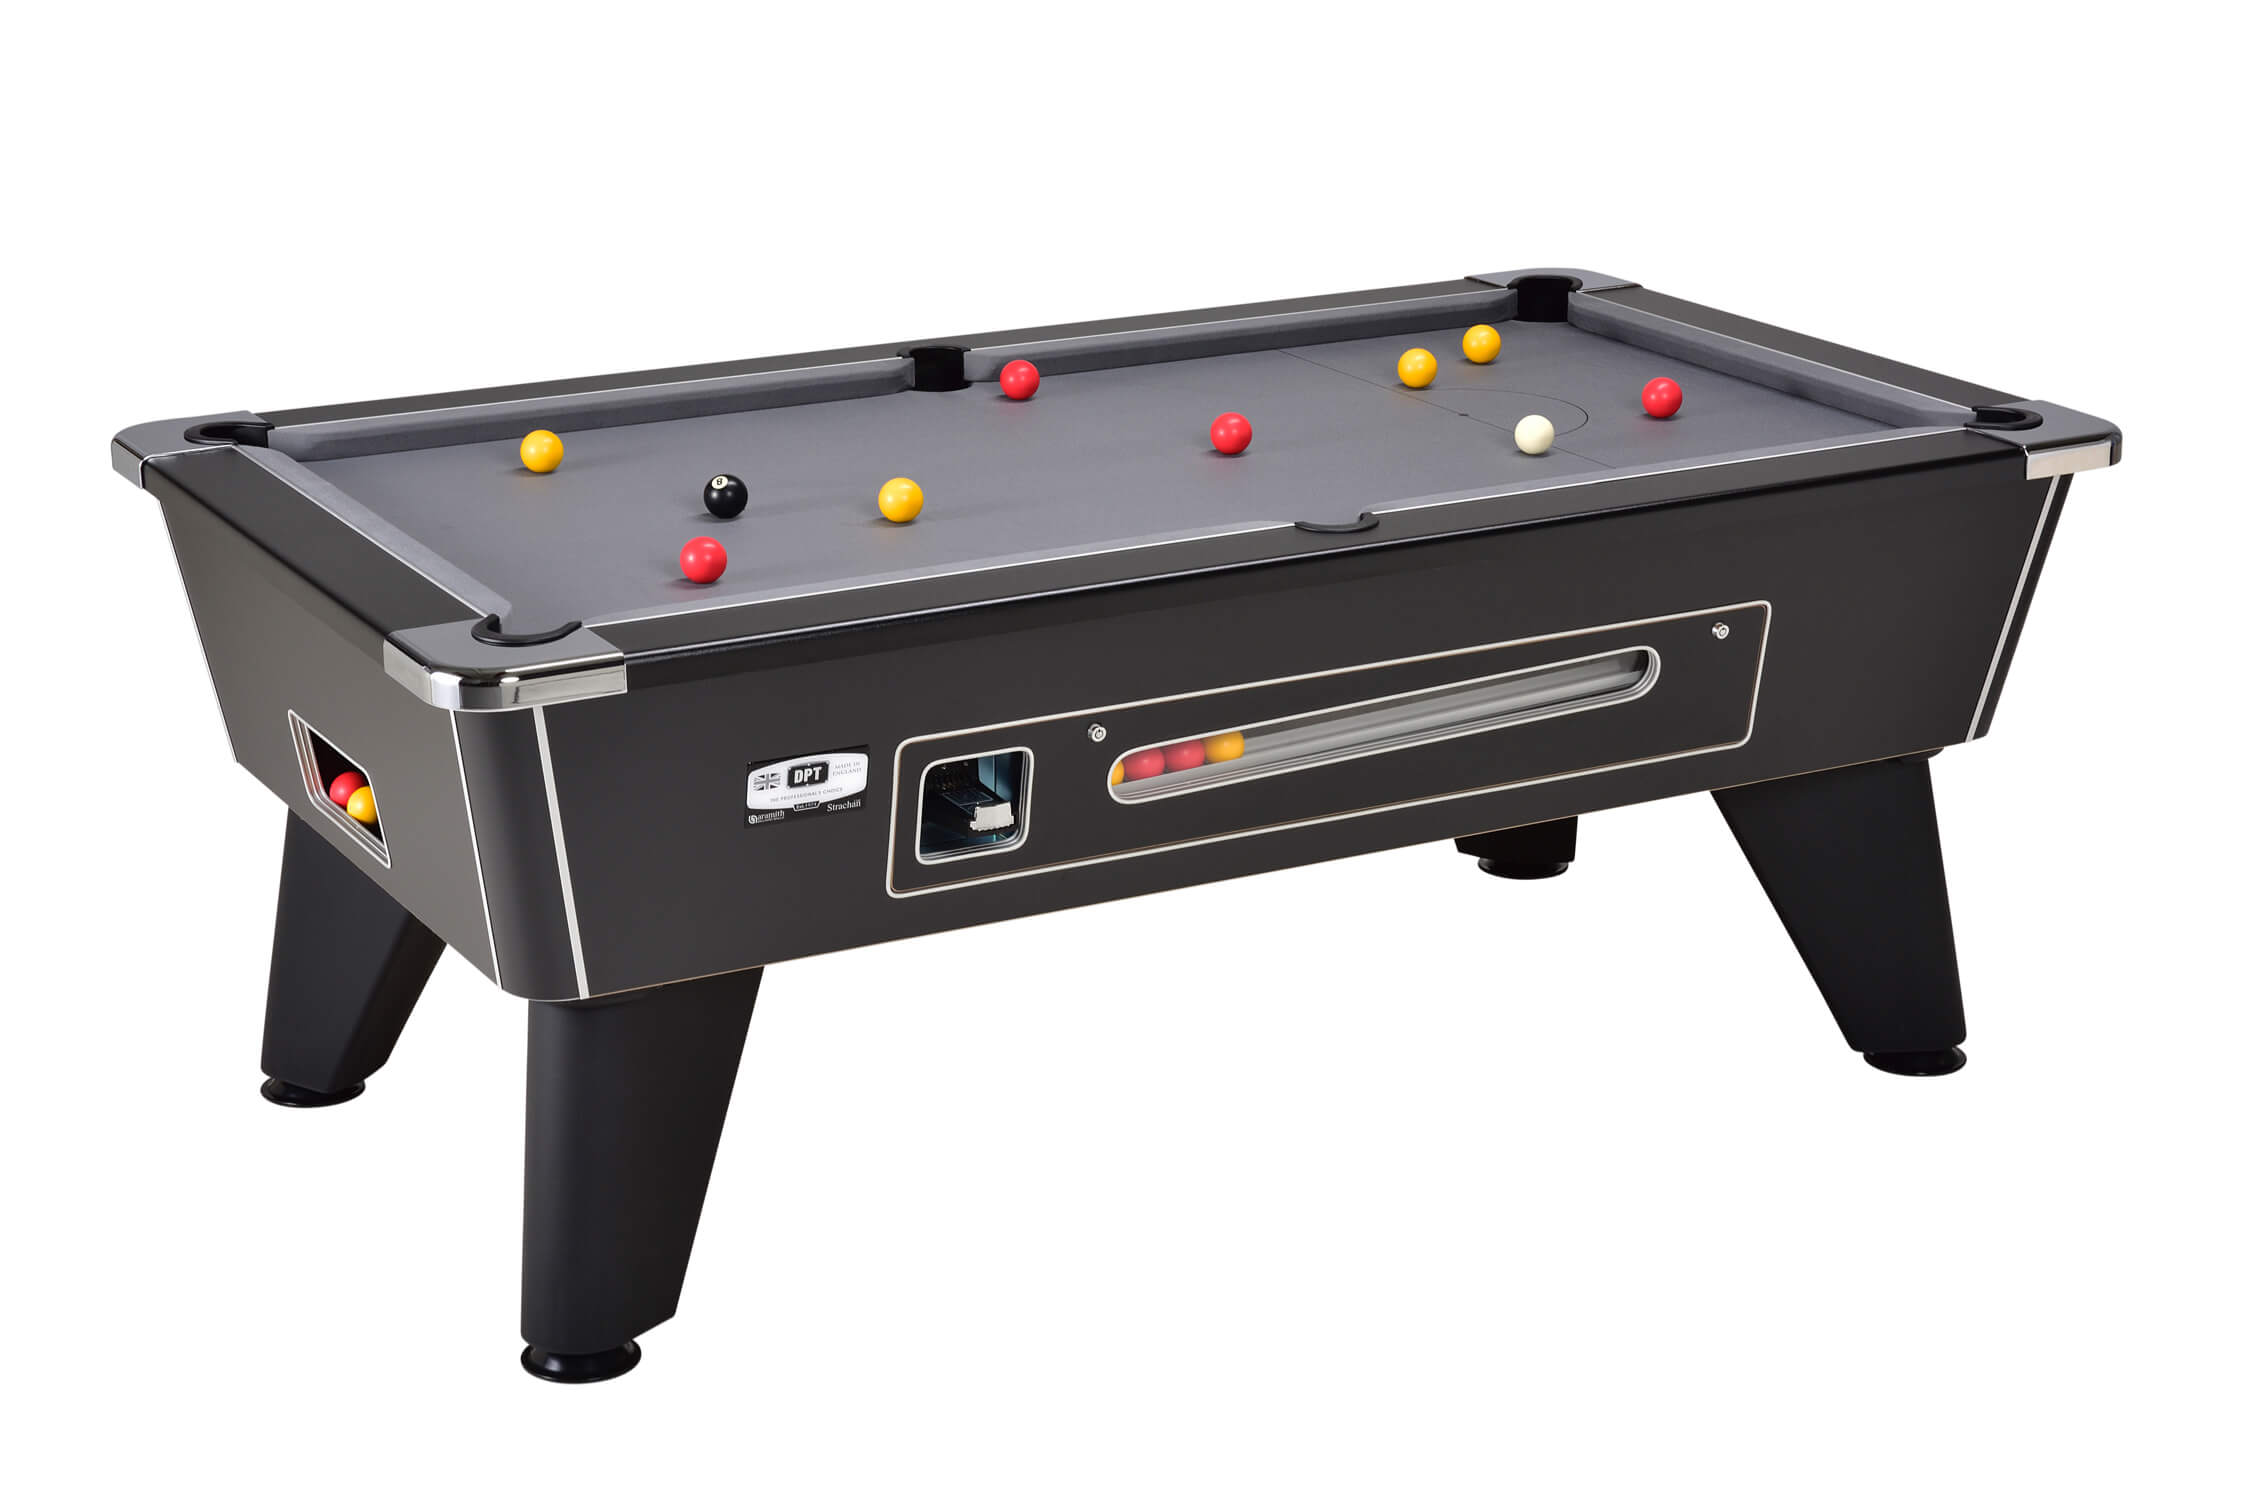 Omega 2.0 Coin Operated Pool Table – Black